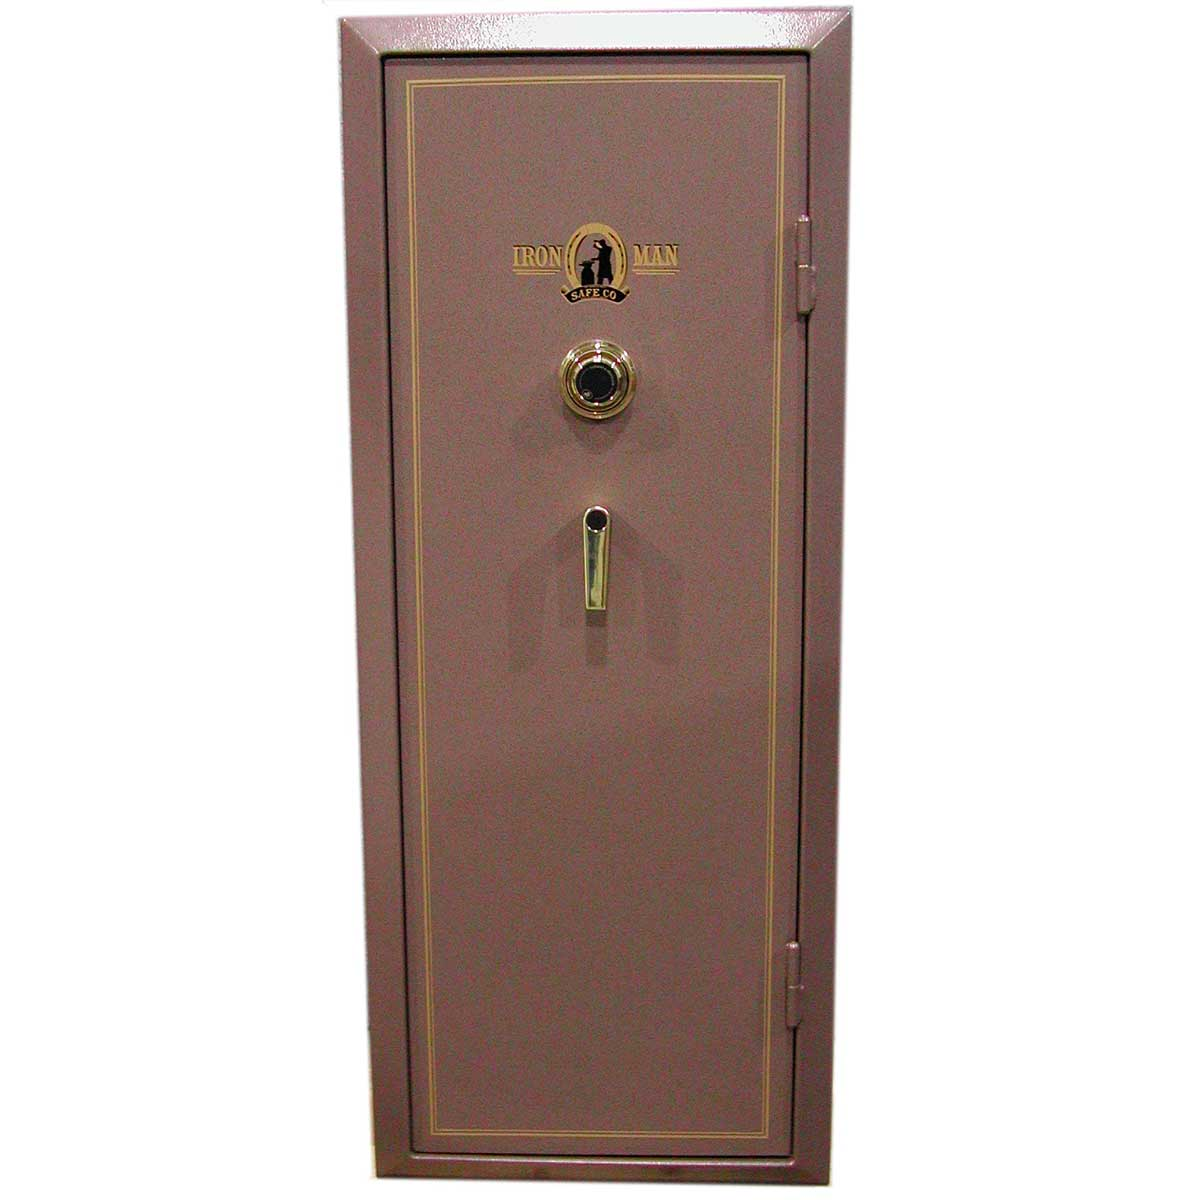 Ironman Safe - 6024 - 3000 Series - 12 Gun Capacity